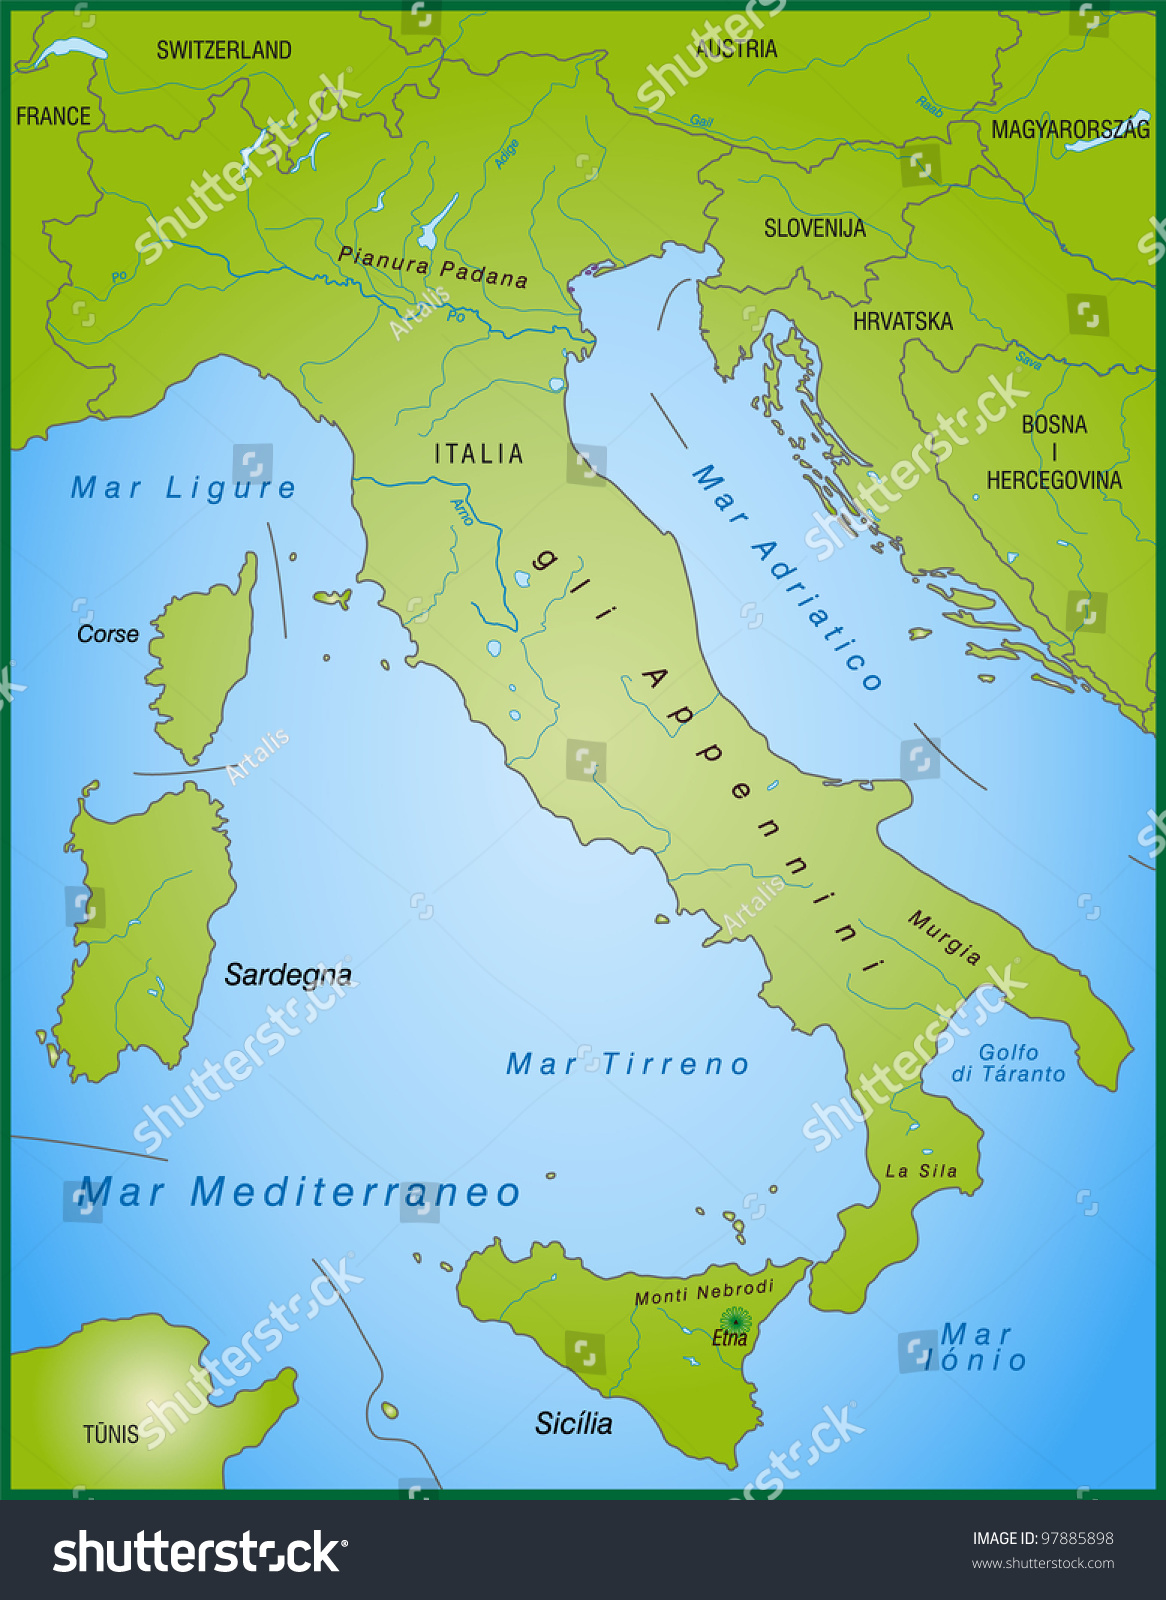 map of italy with neighboring countries